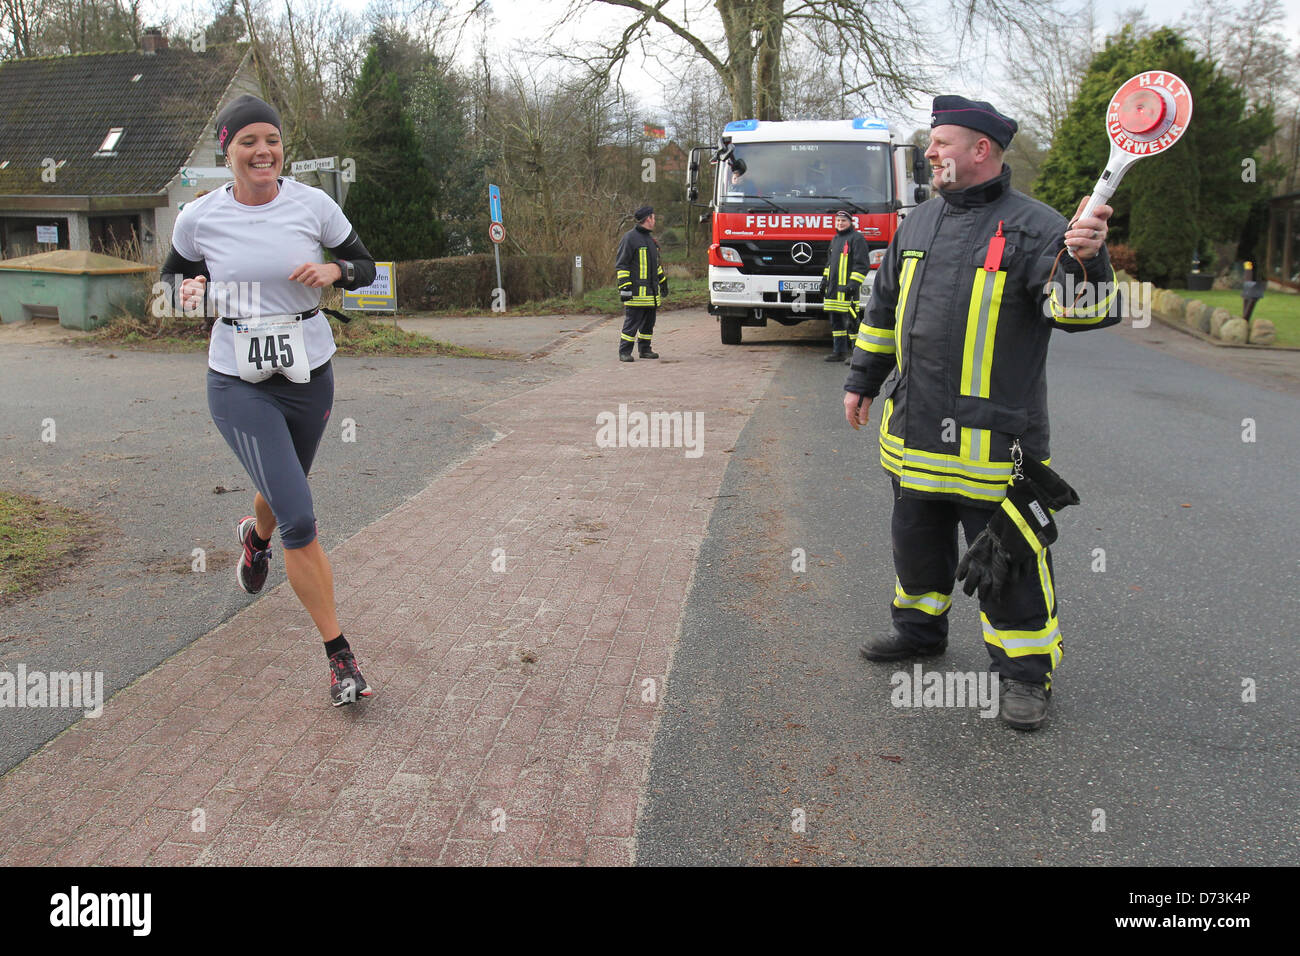 Oeversee, Germany, volunteer fire department Oeversee Frörup helps at the annual New Year's run - Stock Image